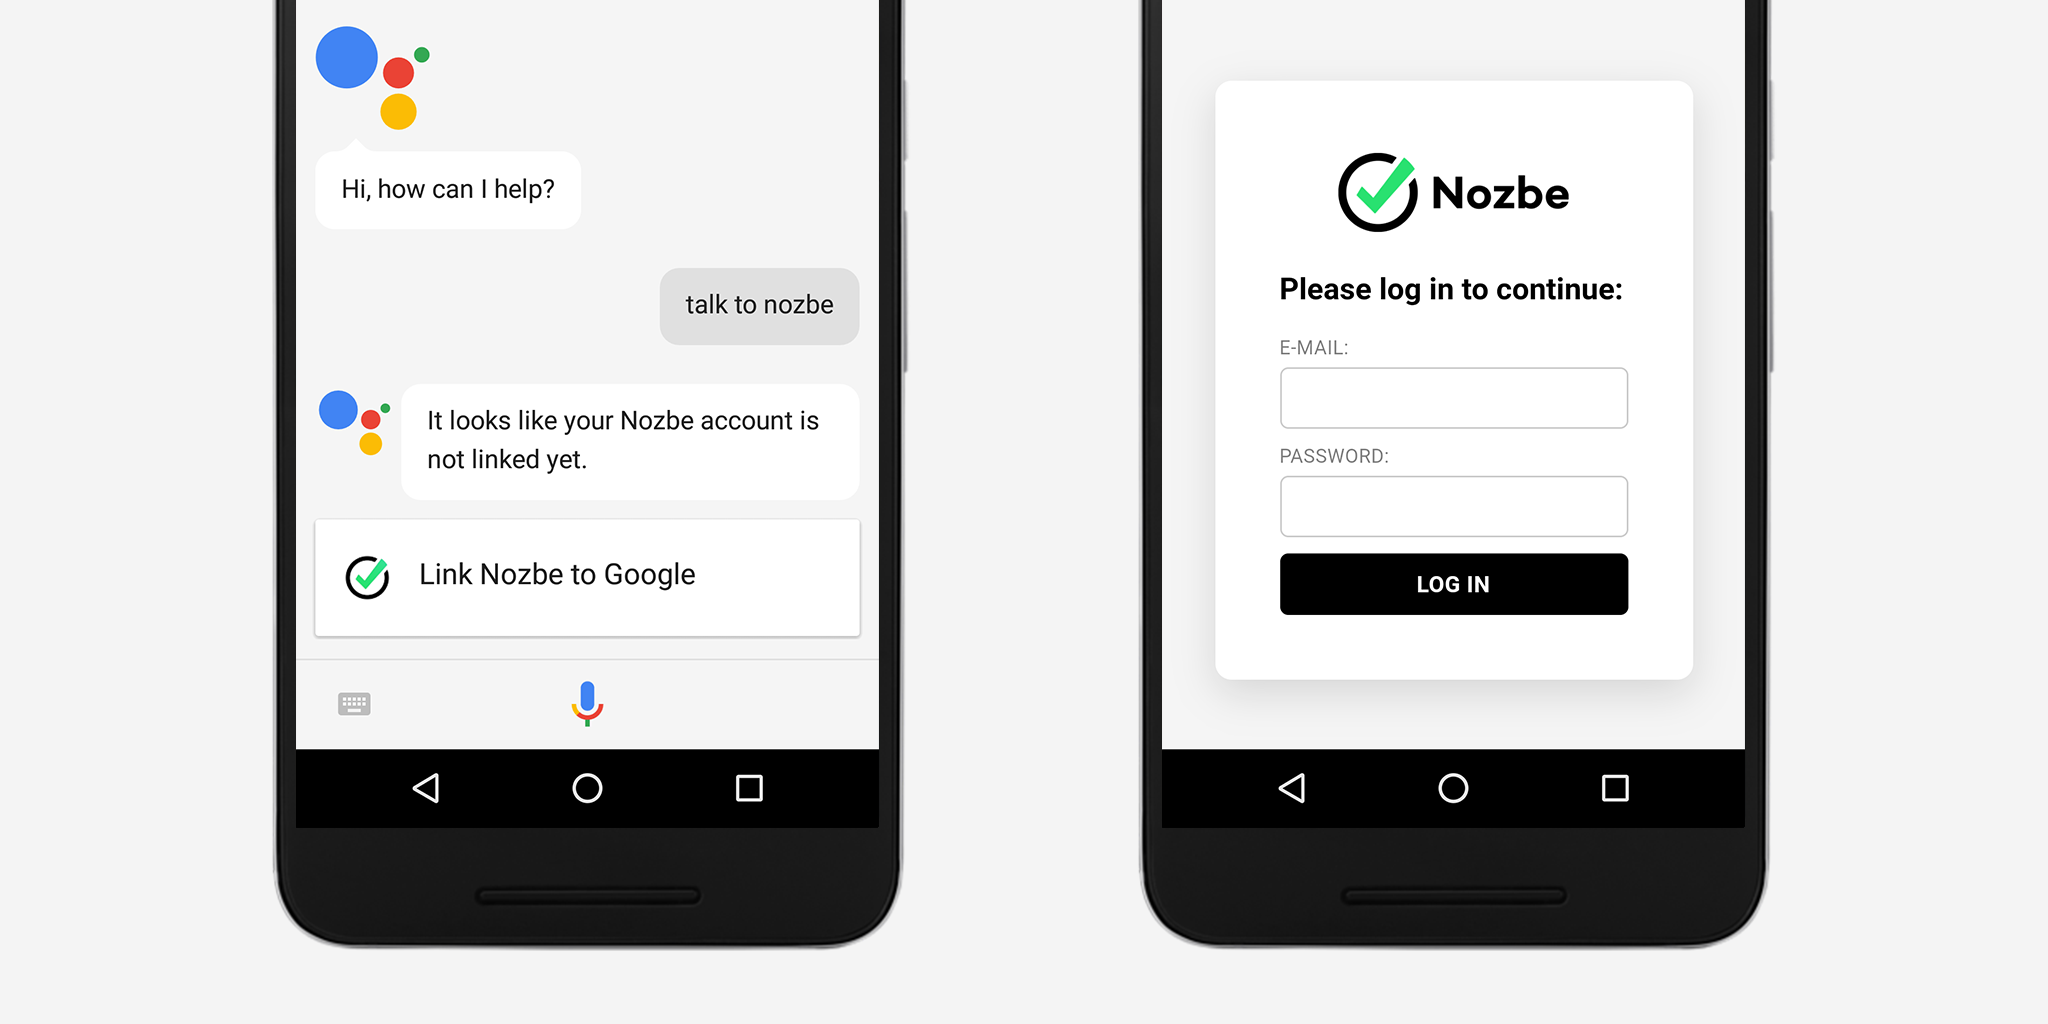 Nozbe on Android :: Nozbe Help